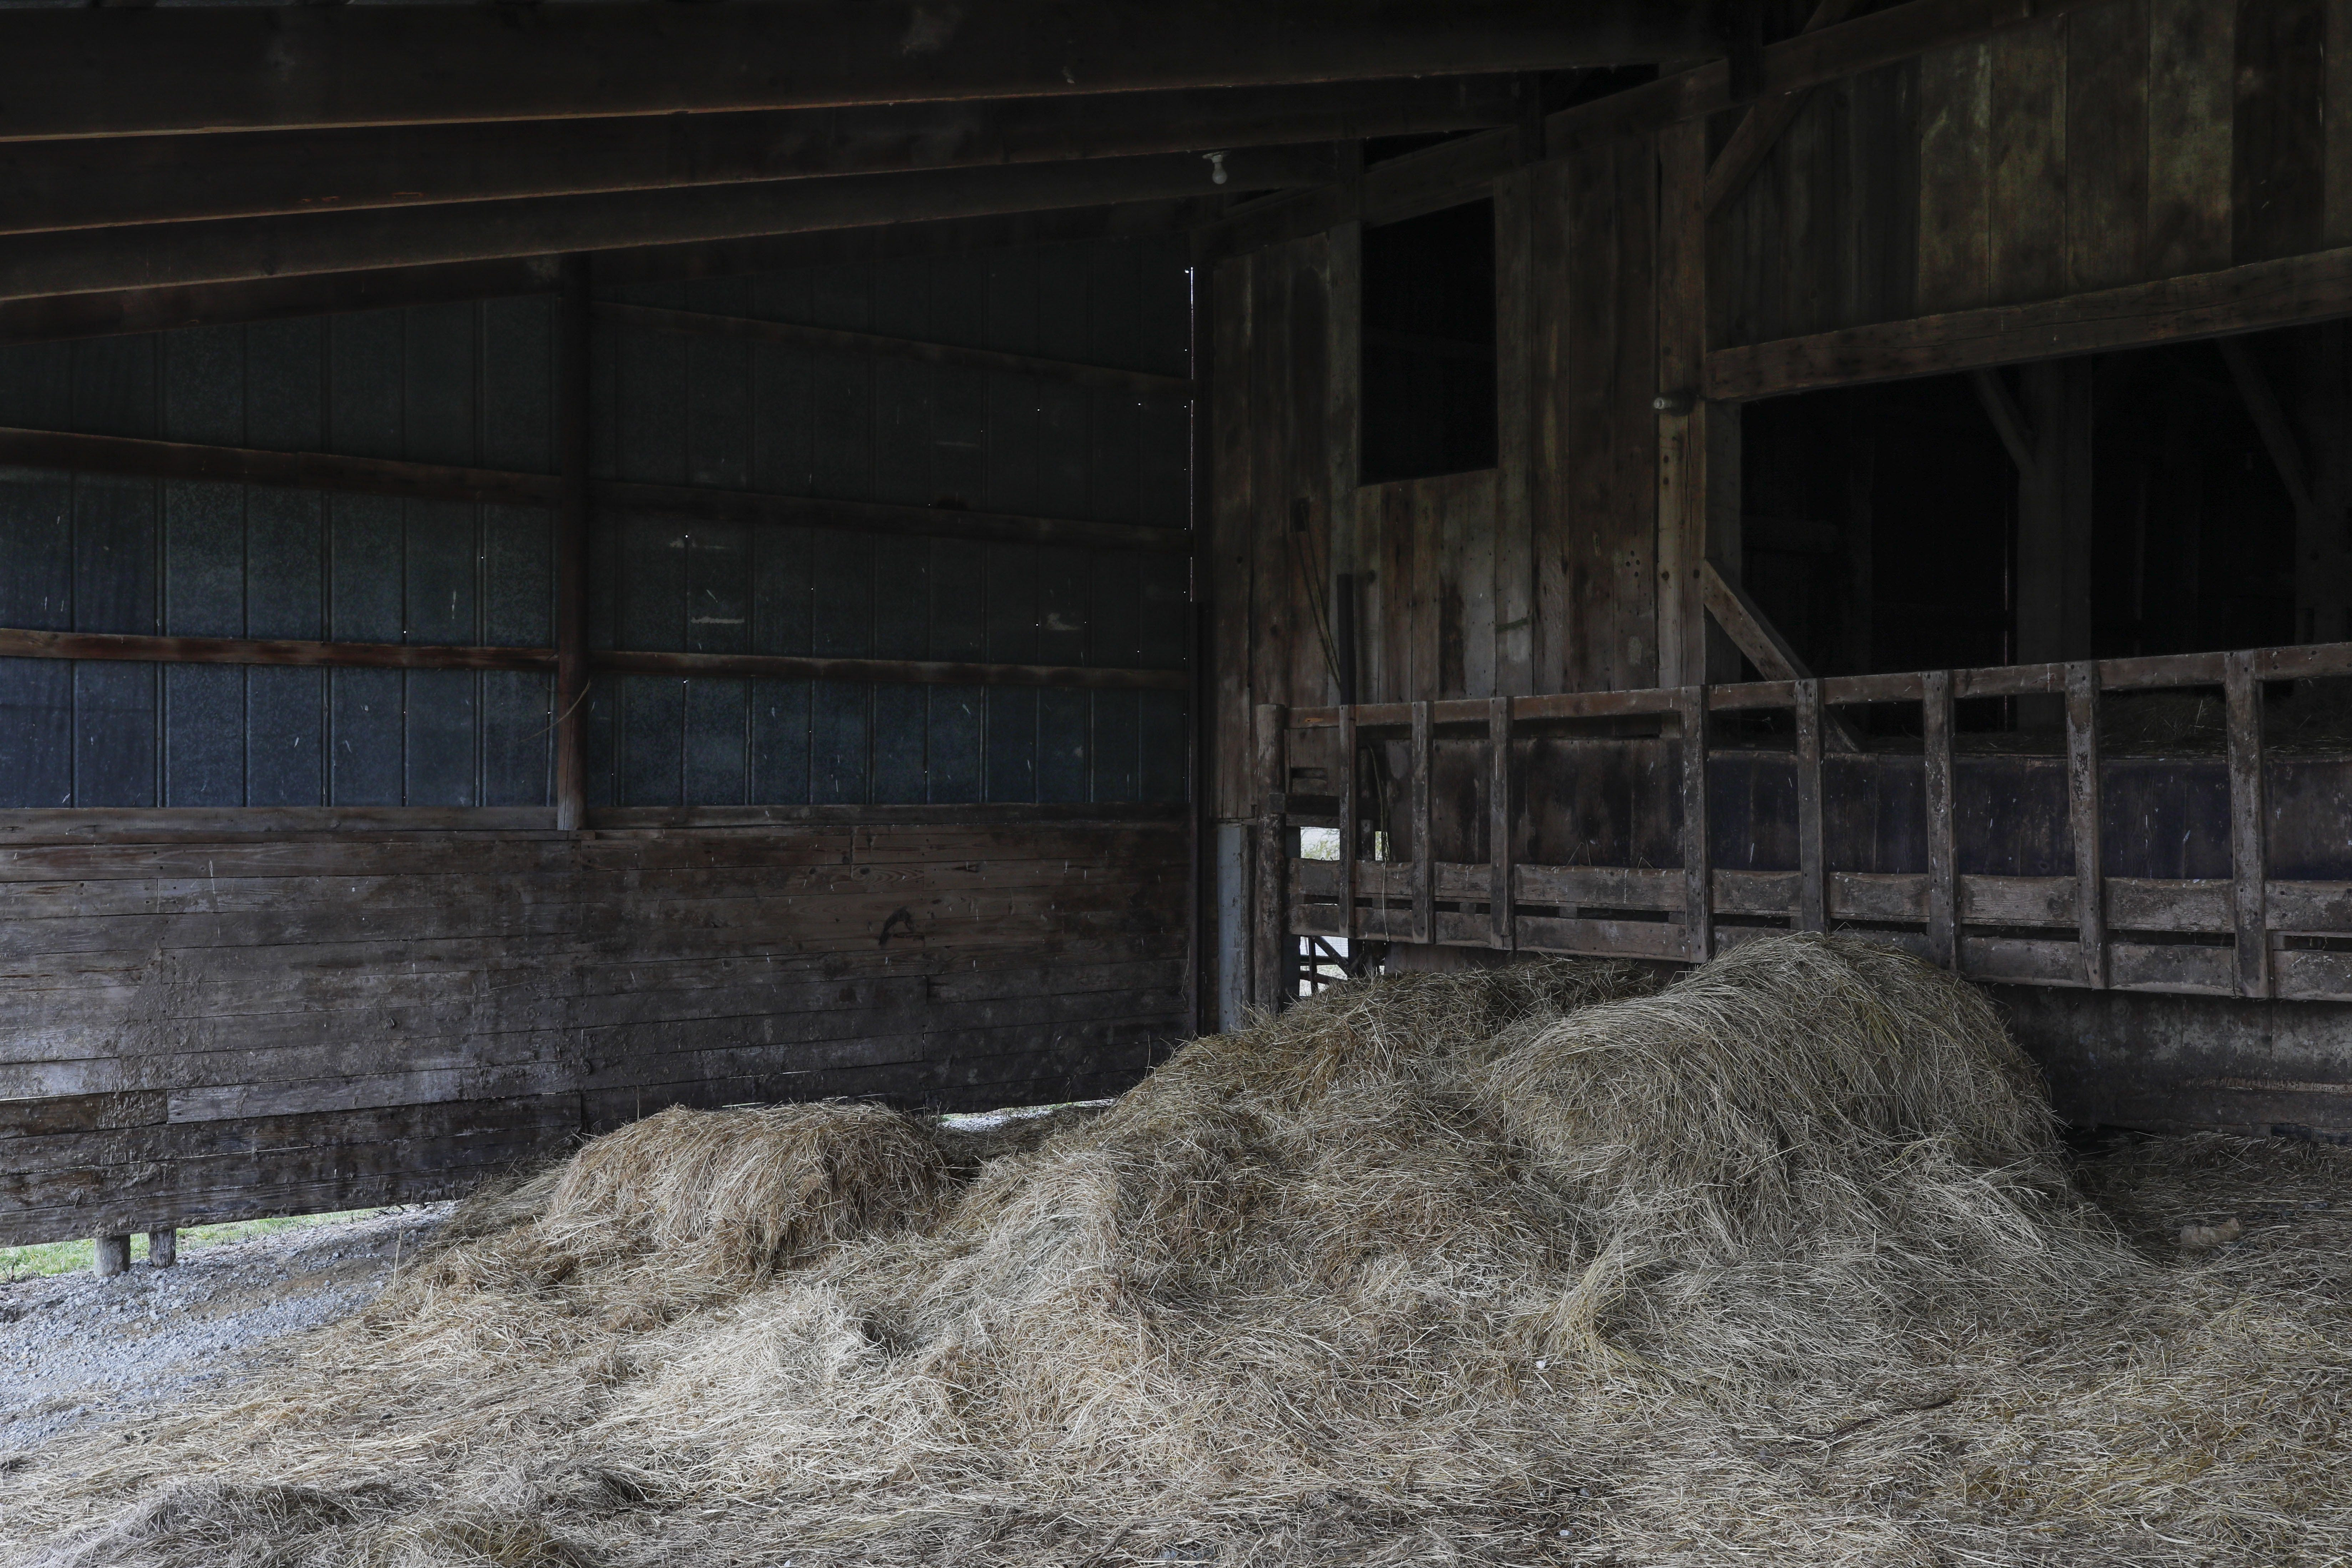 Hay still sits in a barn once owned by Charlie Utter's cousin, a farmer who died by suicide in July 2017, on Tuesday, March 3, 2020 in Georgetown, Ohio. After his death, Charlie sold off some of his cousin's remaining cattle, but some remnants of the farm still remain almost three years after his death. [Joshua A. Bickel/Dispatch]